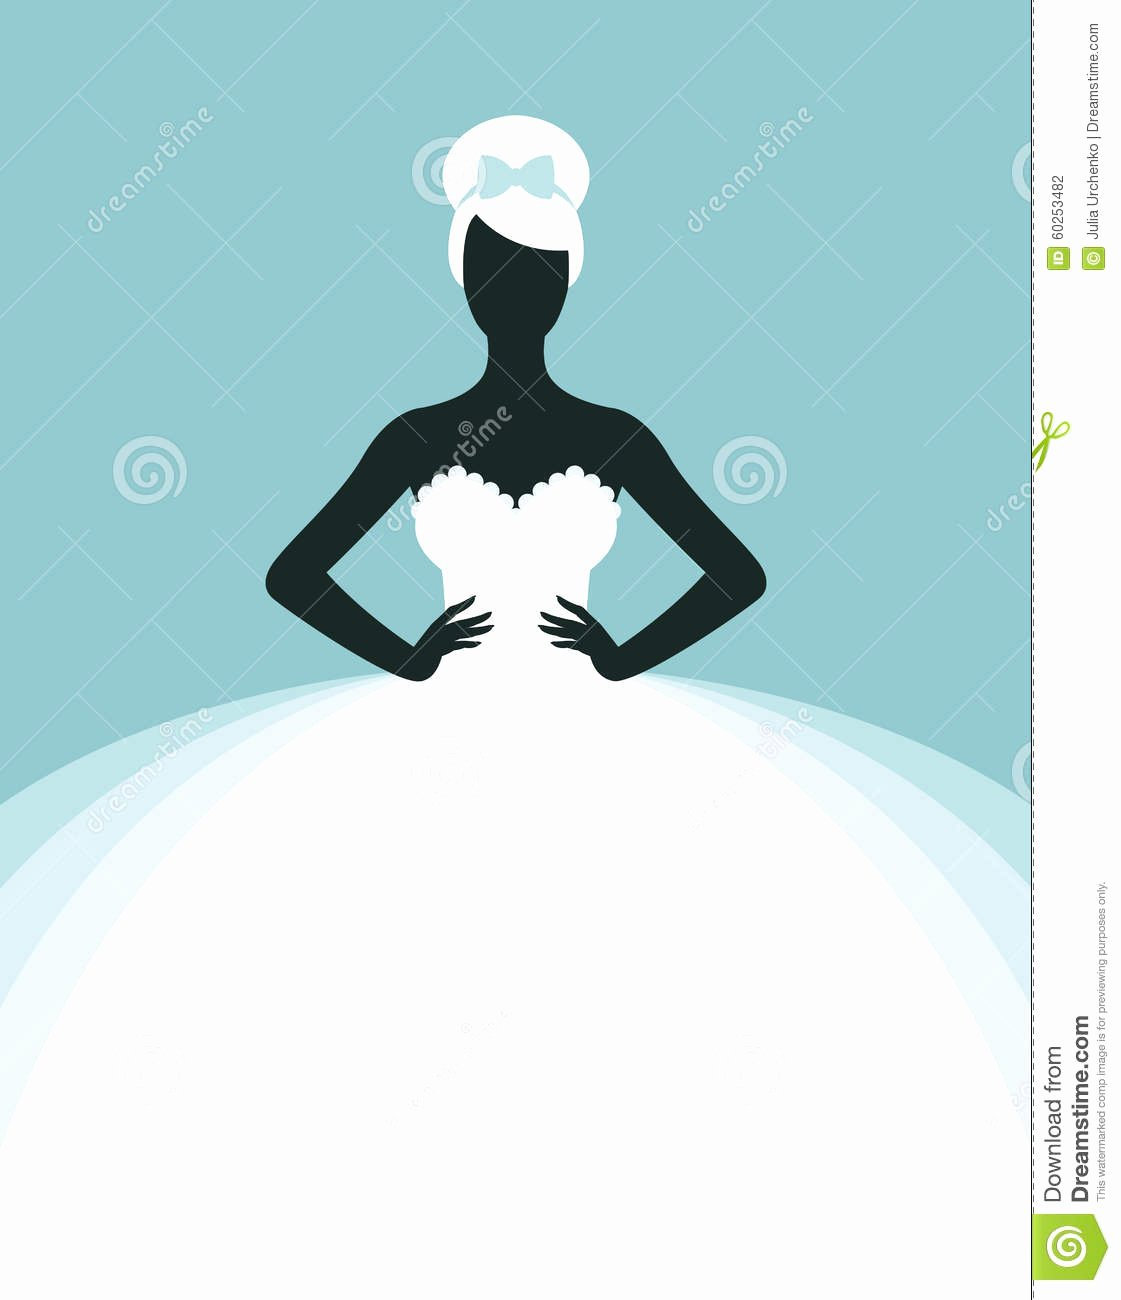 Wedding Dress Invitation Template Awesome Bride In Wedding Dress Stock Vector Image Of Female